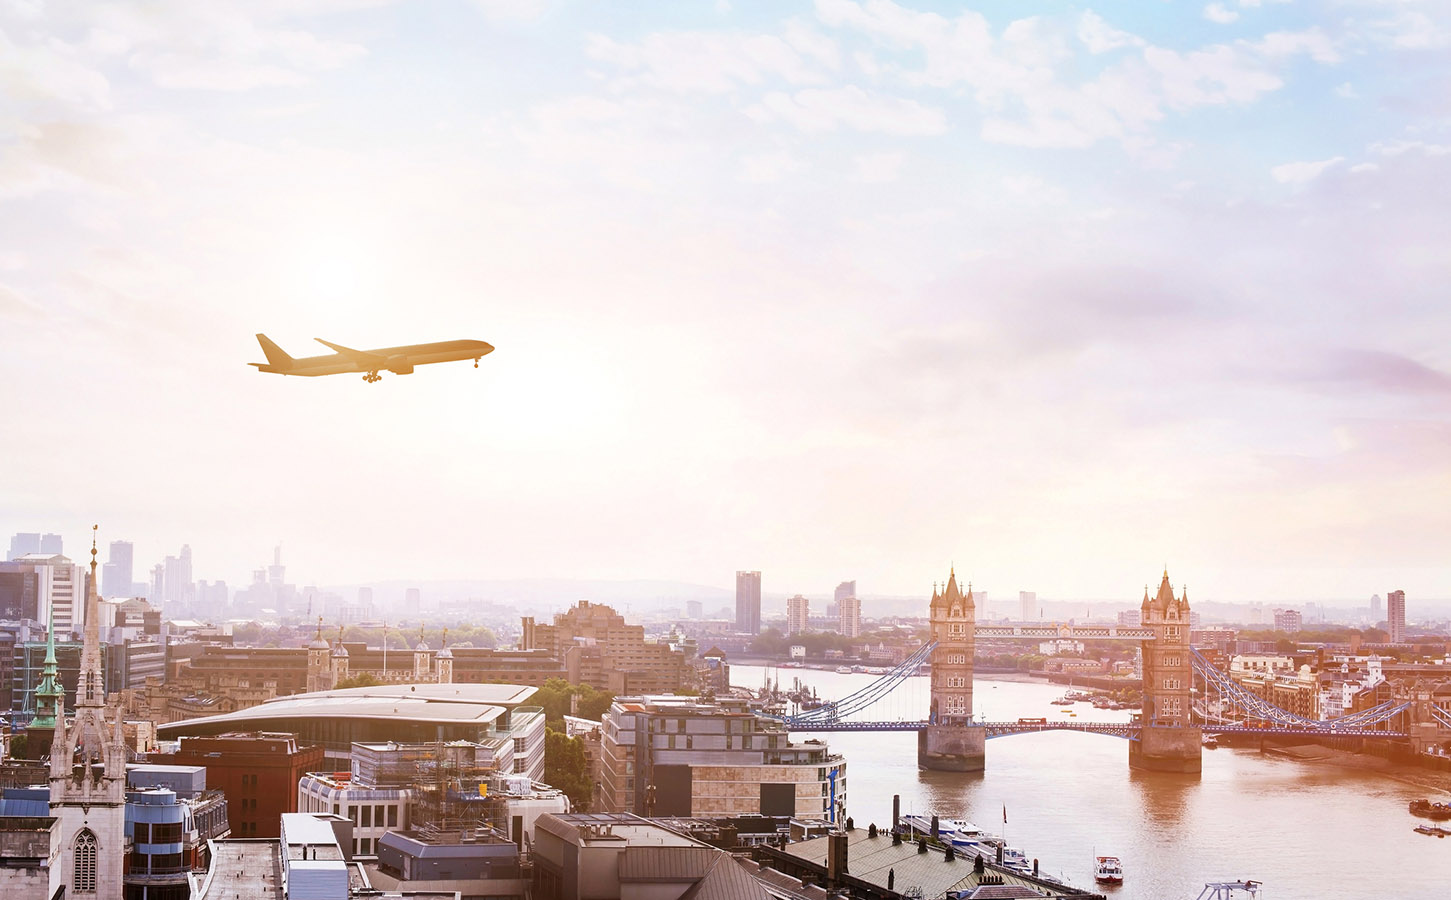 The best way to search flights for business travel